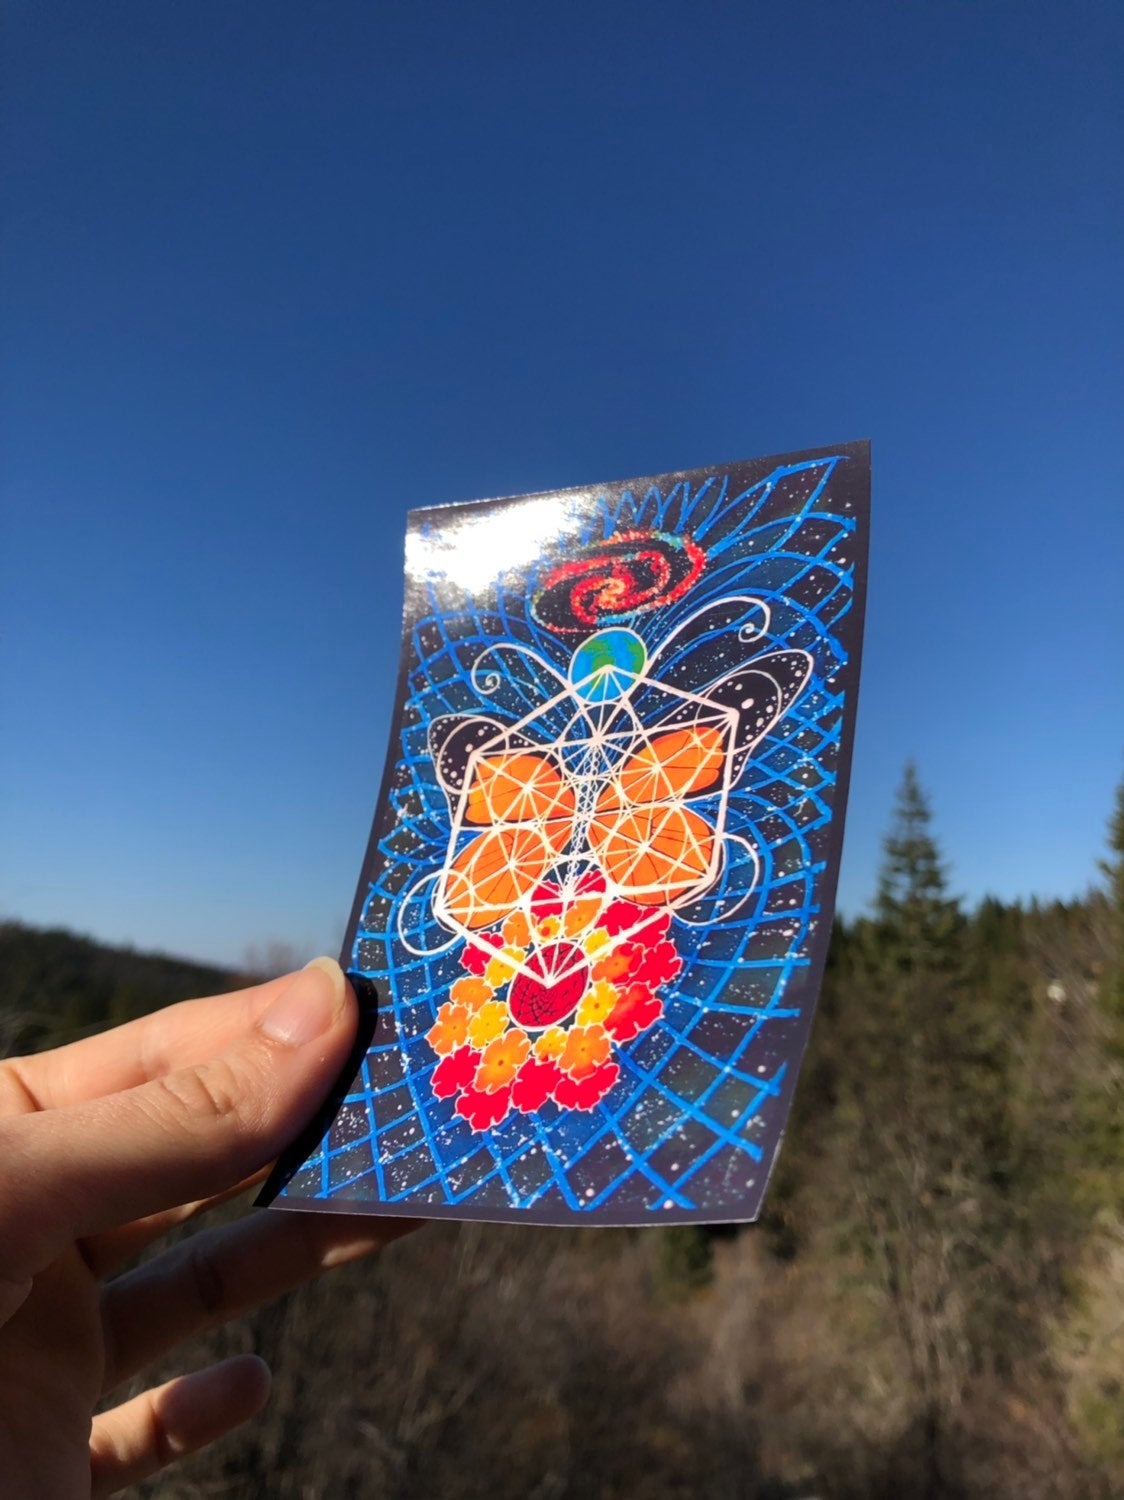 Sticker Butterfly Space Art / Original Art By Heather Stone / Sacred Feminine Art / Monarch Butterfly / Art Sticker / Sacred Geometry Galaxy